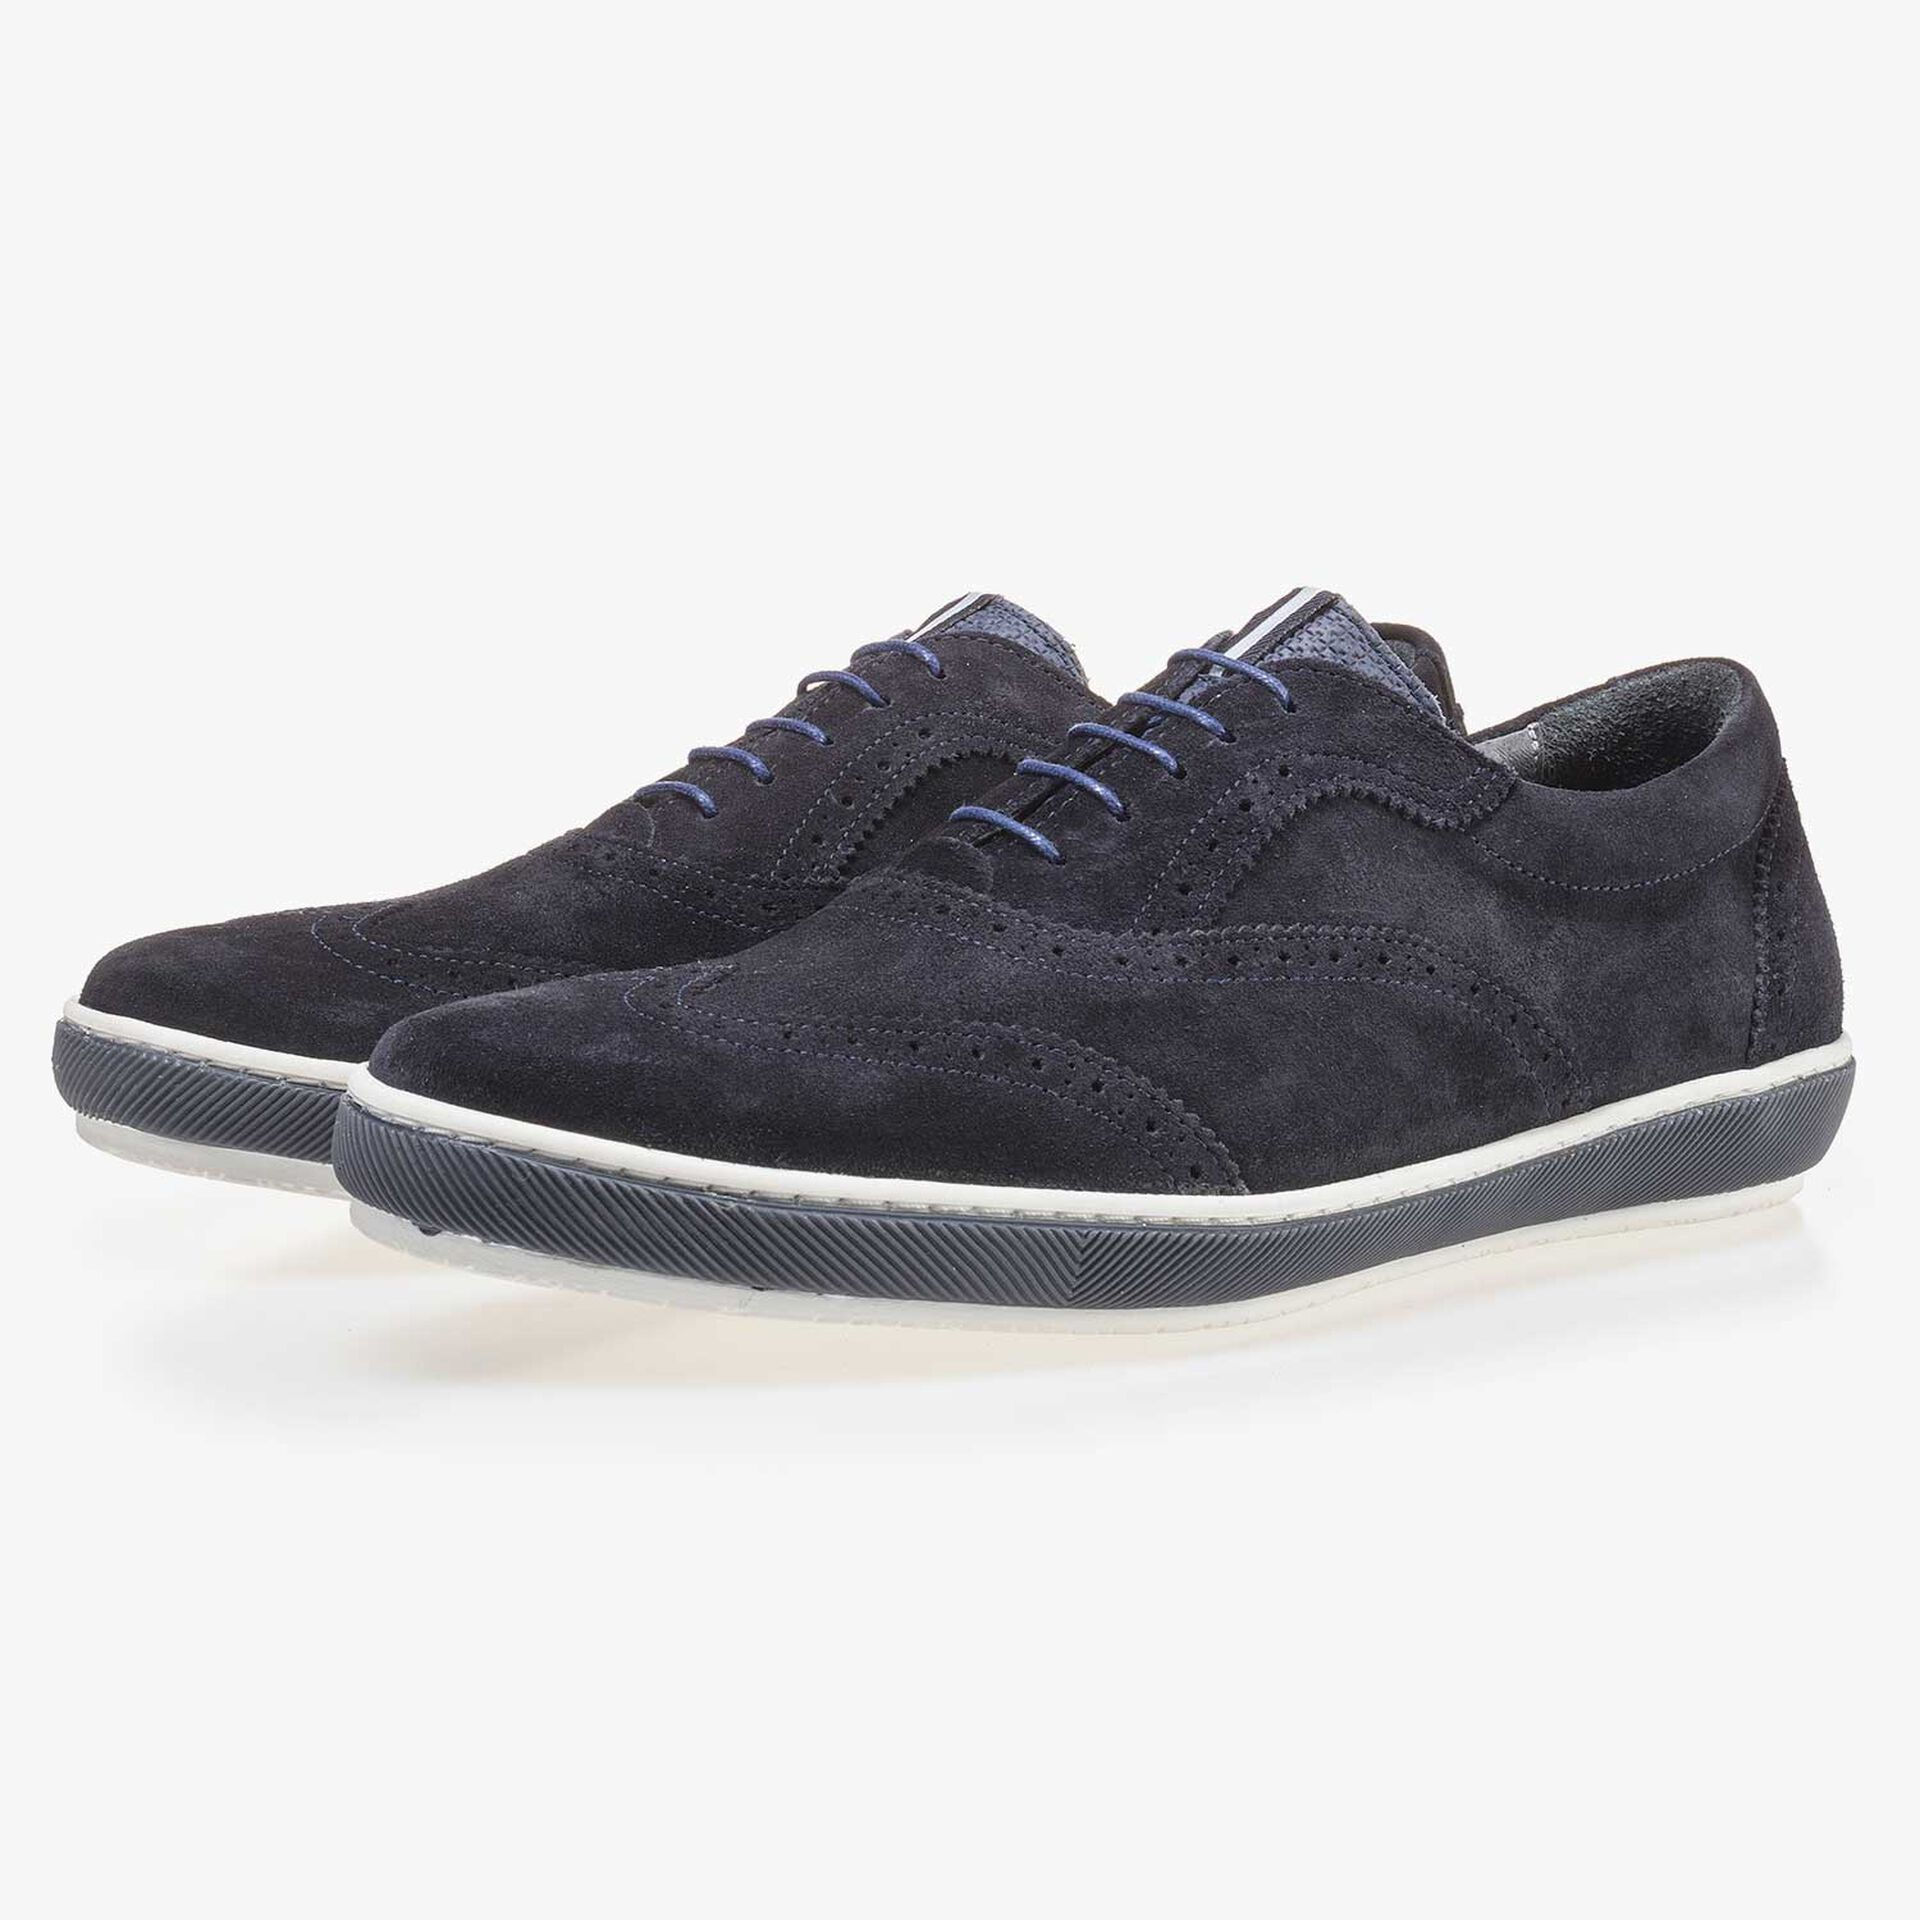 Dark blue suede leather brogue shoe